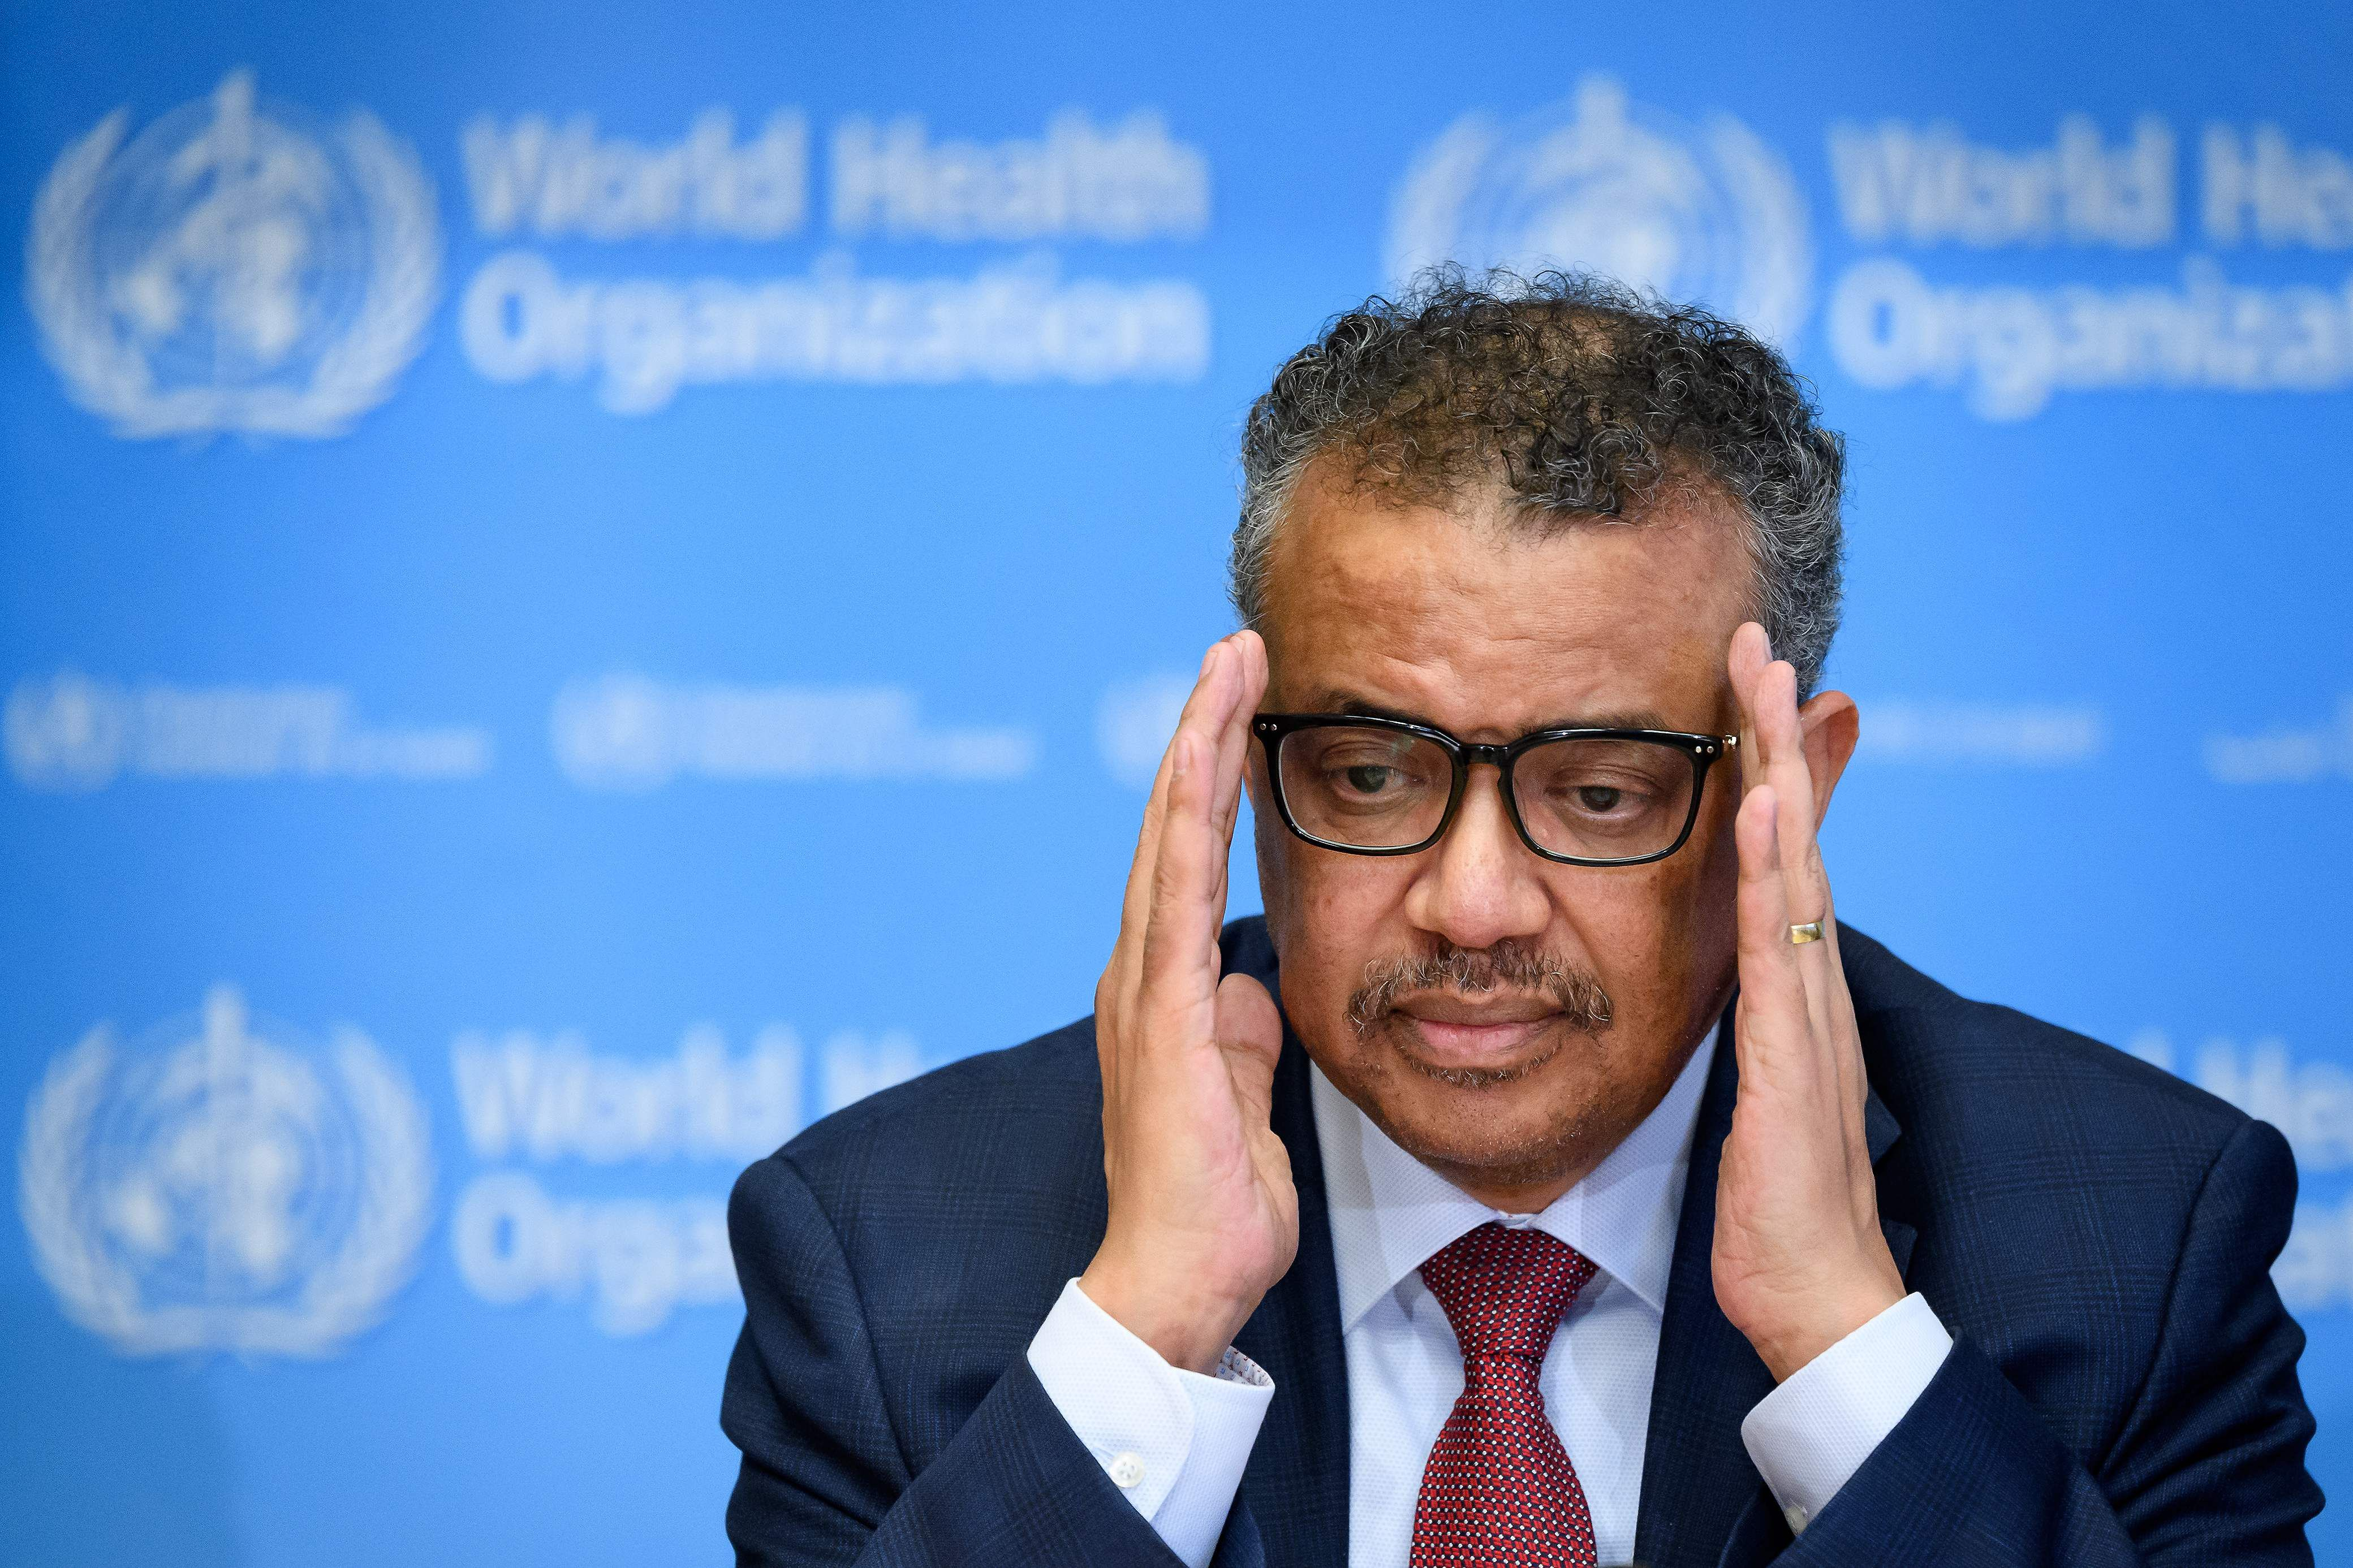 Questions surfacing about history of WHO's director Tedros Adhanom ...